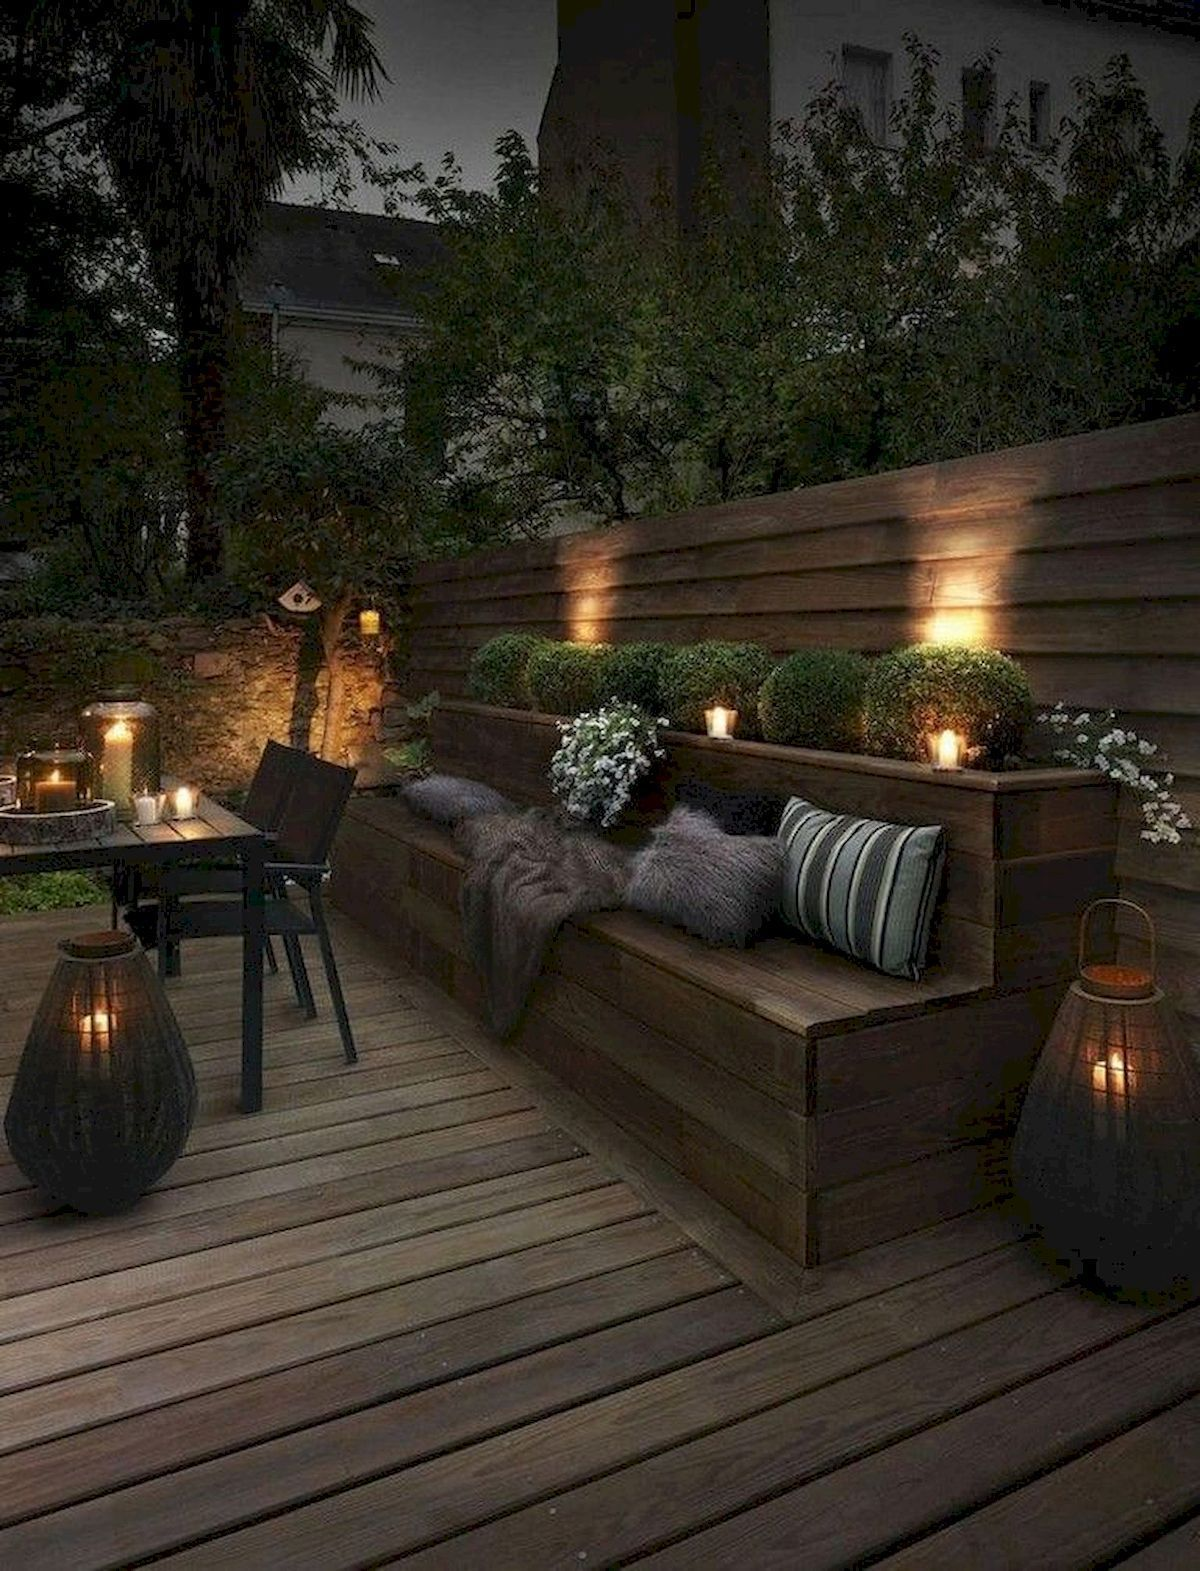 The Best Wooden Deck Design Ideas For Your Outdoors Patios 32